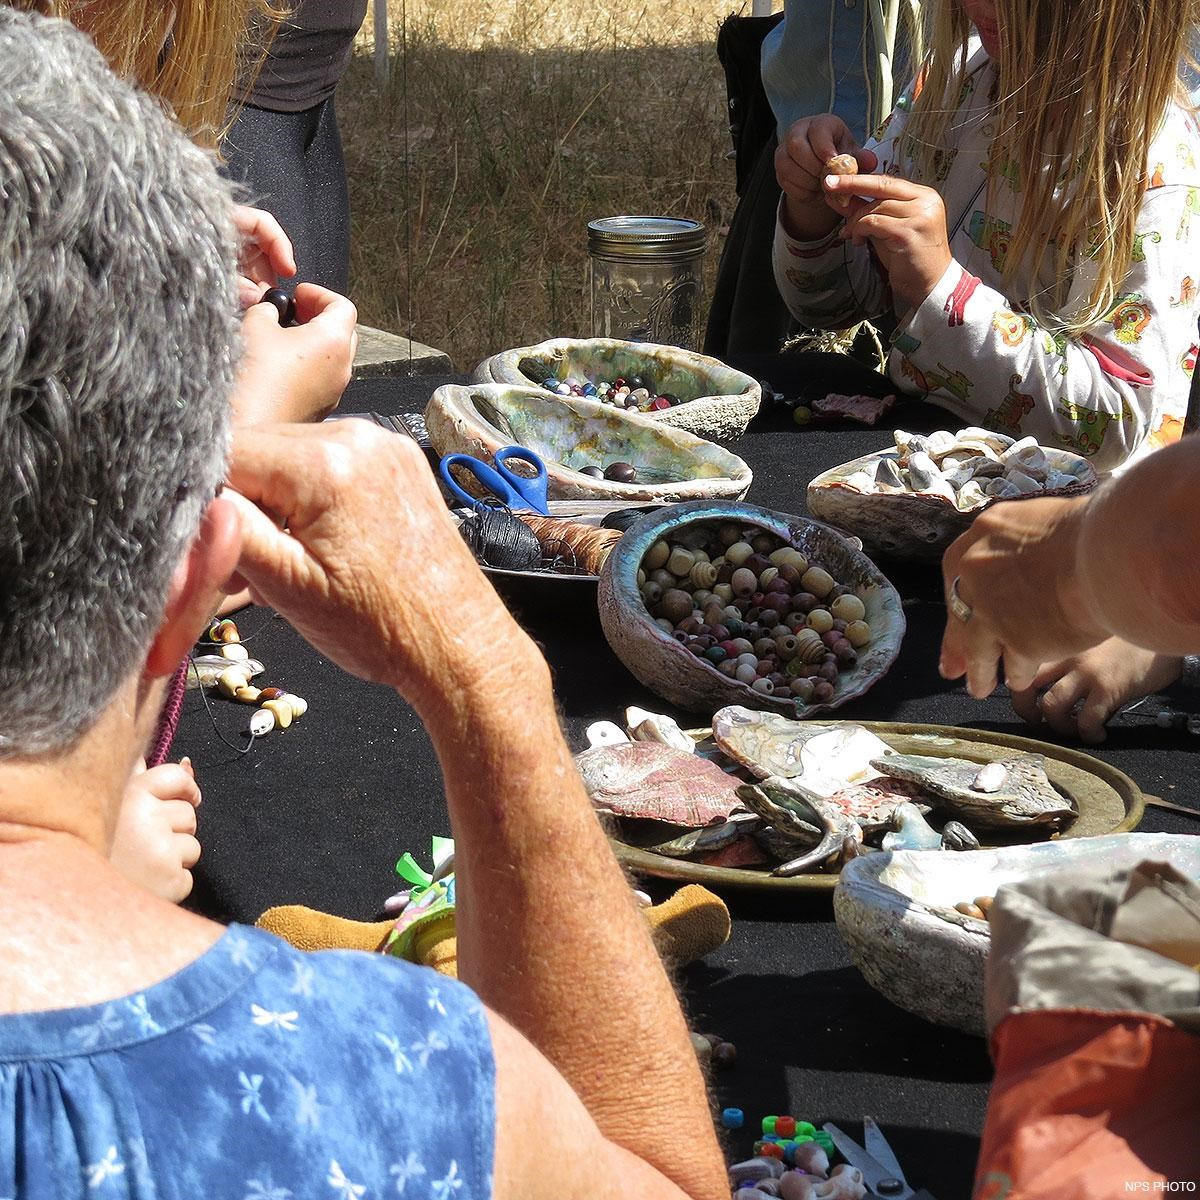 Abalone shells on a table contain various beads. People surrounding the table make bead jewelry.